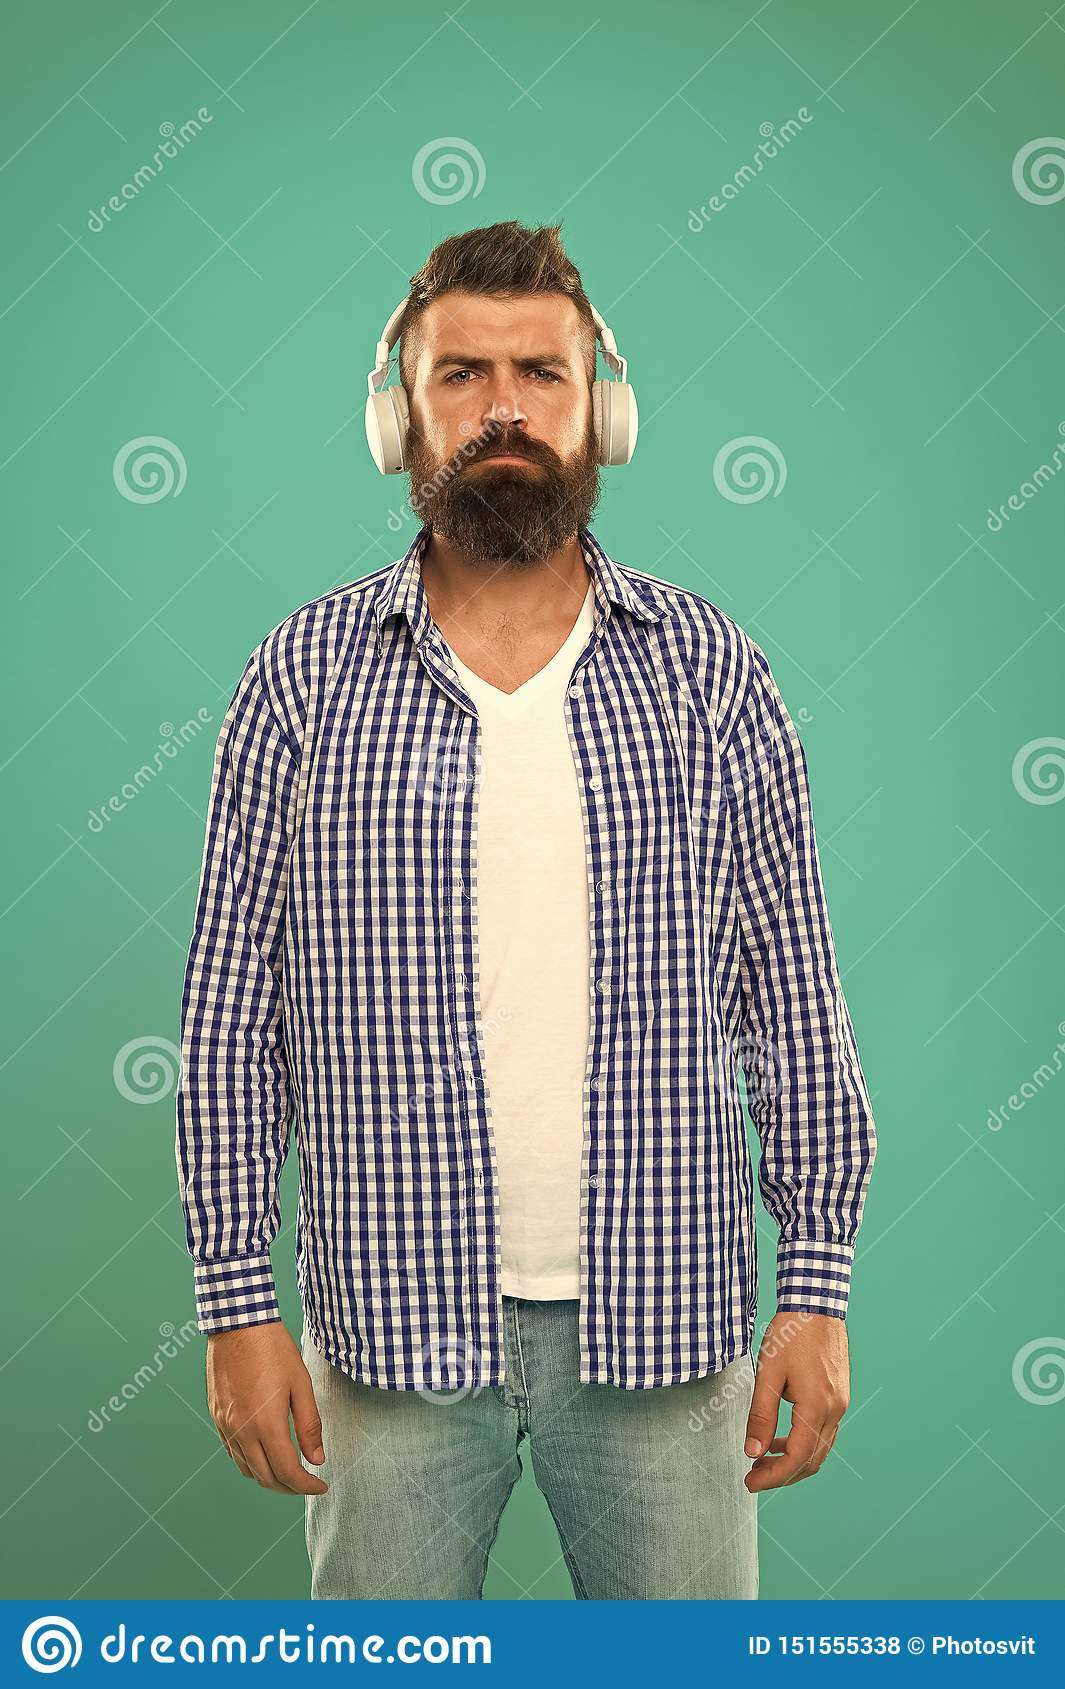 Excellent sound. Music library concept. Walking with music. Lifestyle urban citizen. Music always with me. Man listening